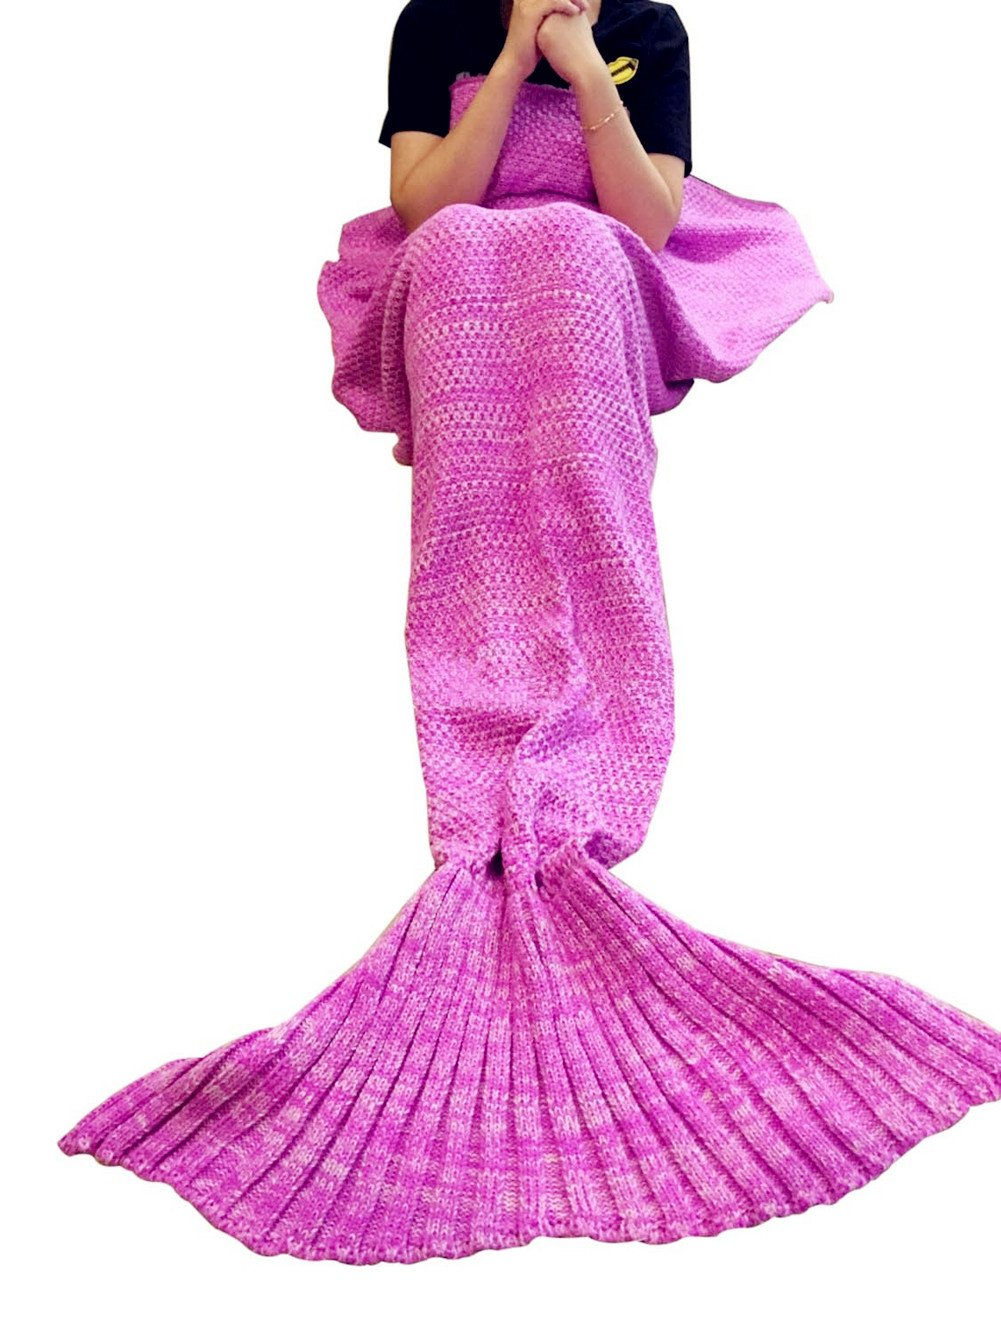 Gifts for Girls, Mermaid Tail Blanket for Ladies,Mermaid blanket, Crochet Snuggle Mermaid, Handmade Crochet Mermaid Blanket,Best Birthday gift persent for Teenage and Adult by Jr.Hagrid (Pink)